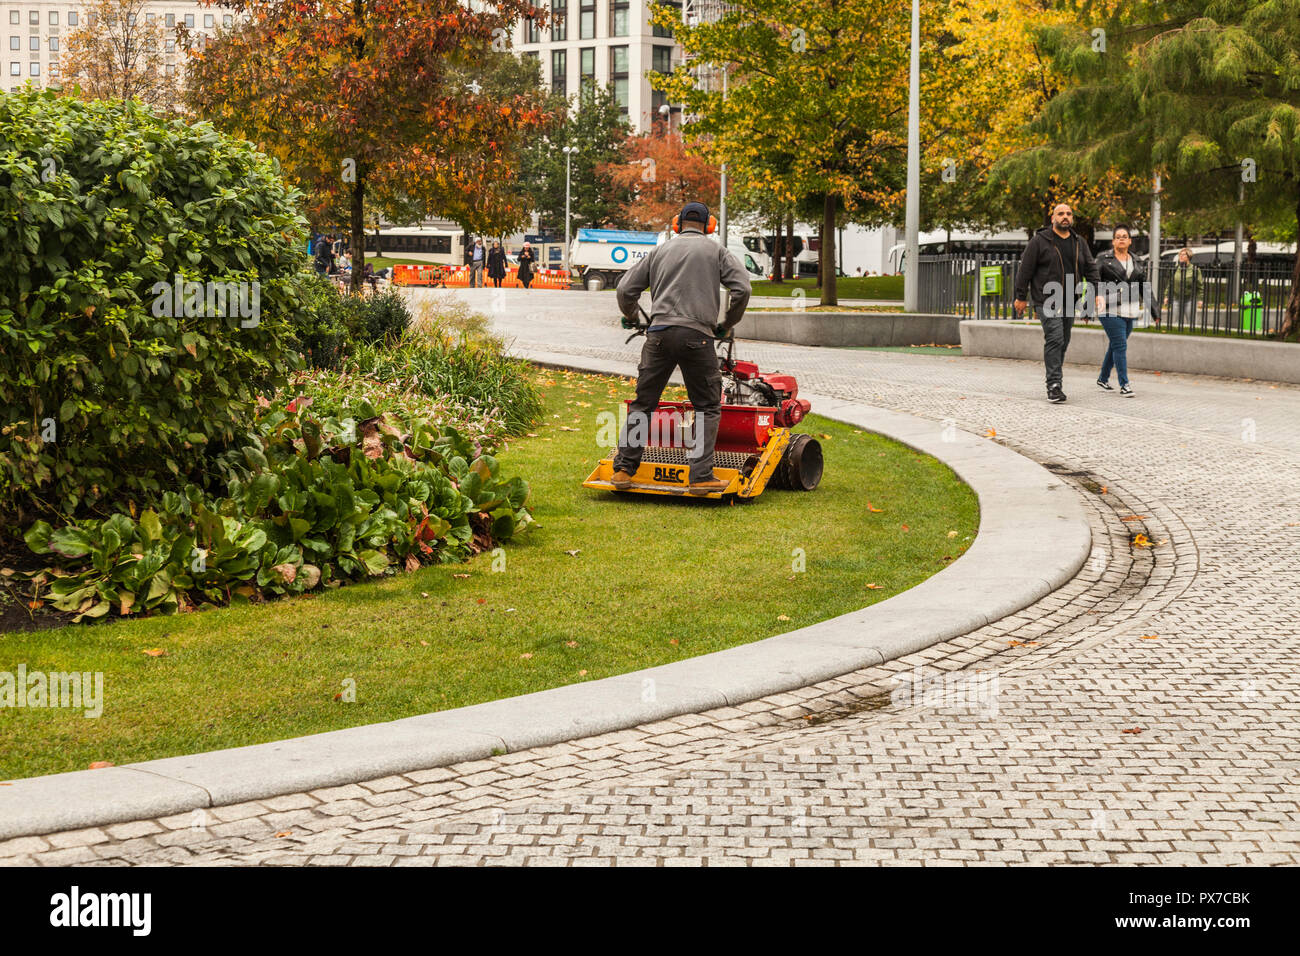 A man on a stand on lawn mower cutting the grass in London,England,UK - Stock Image